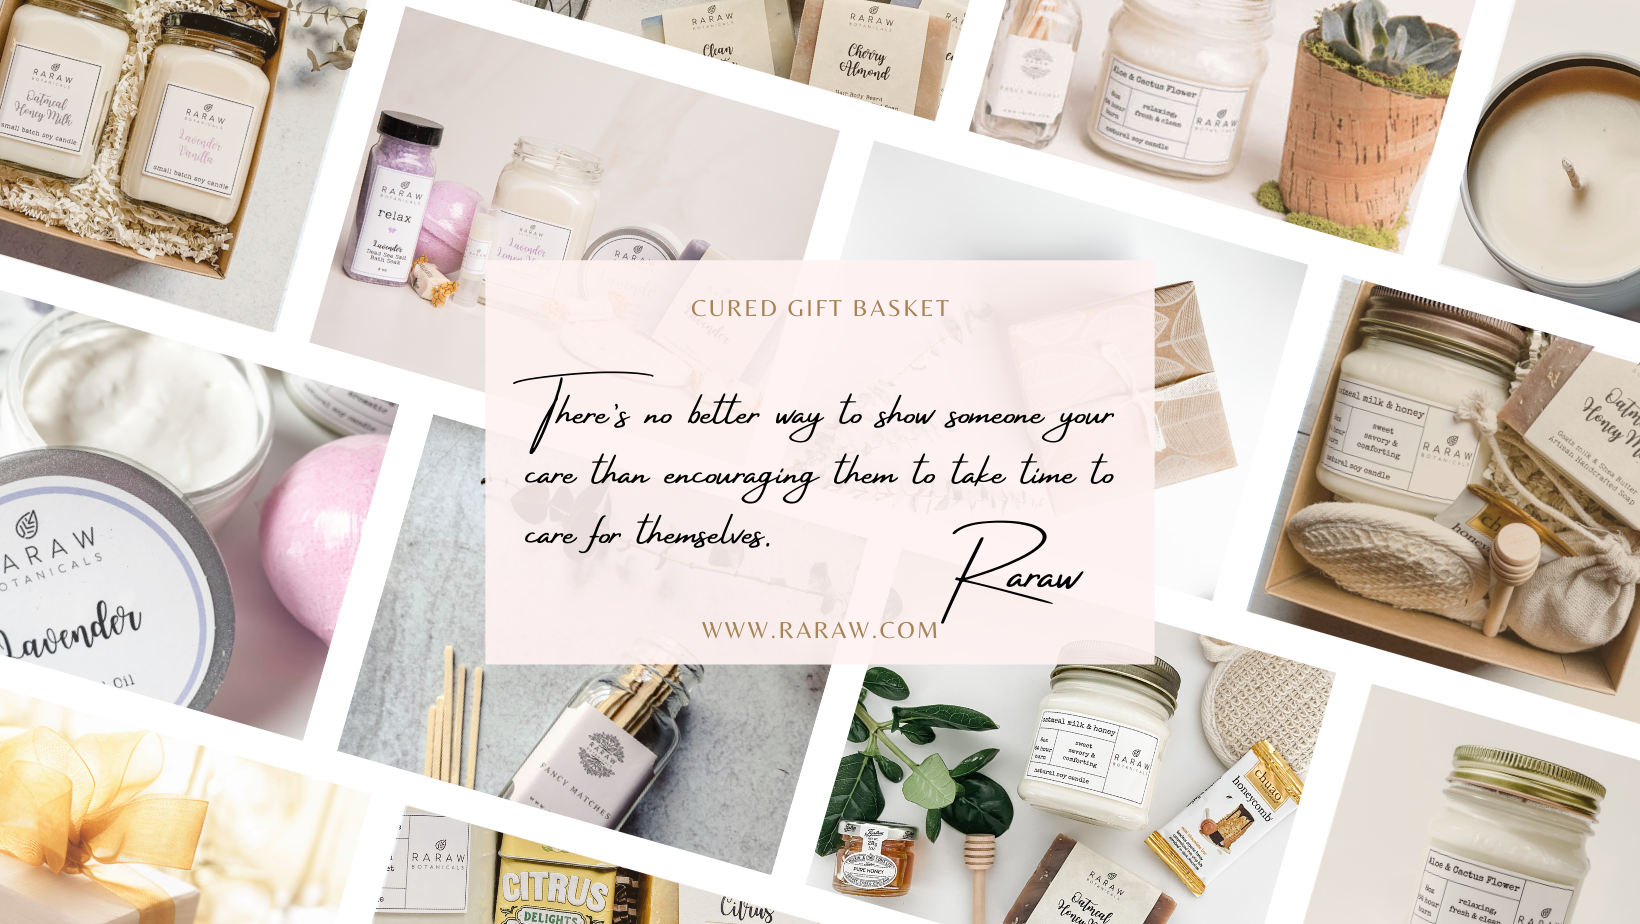 Who We Are—A small business women-led | Raraw Botanicals